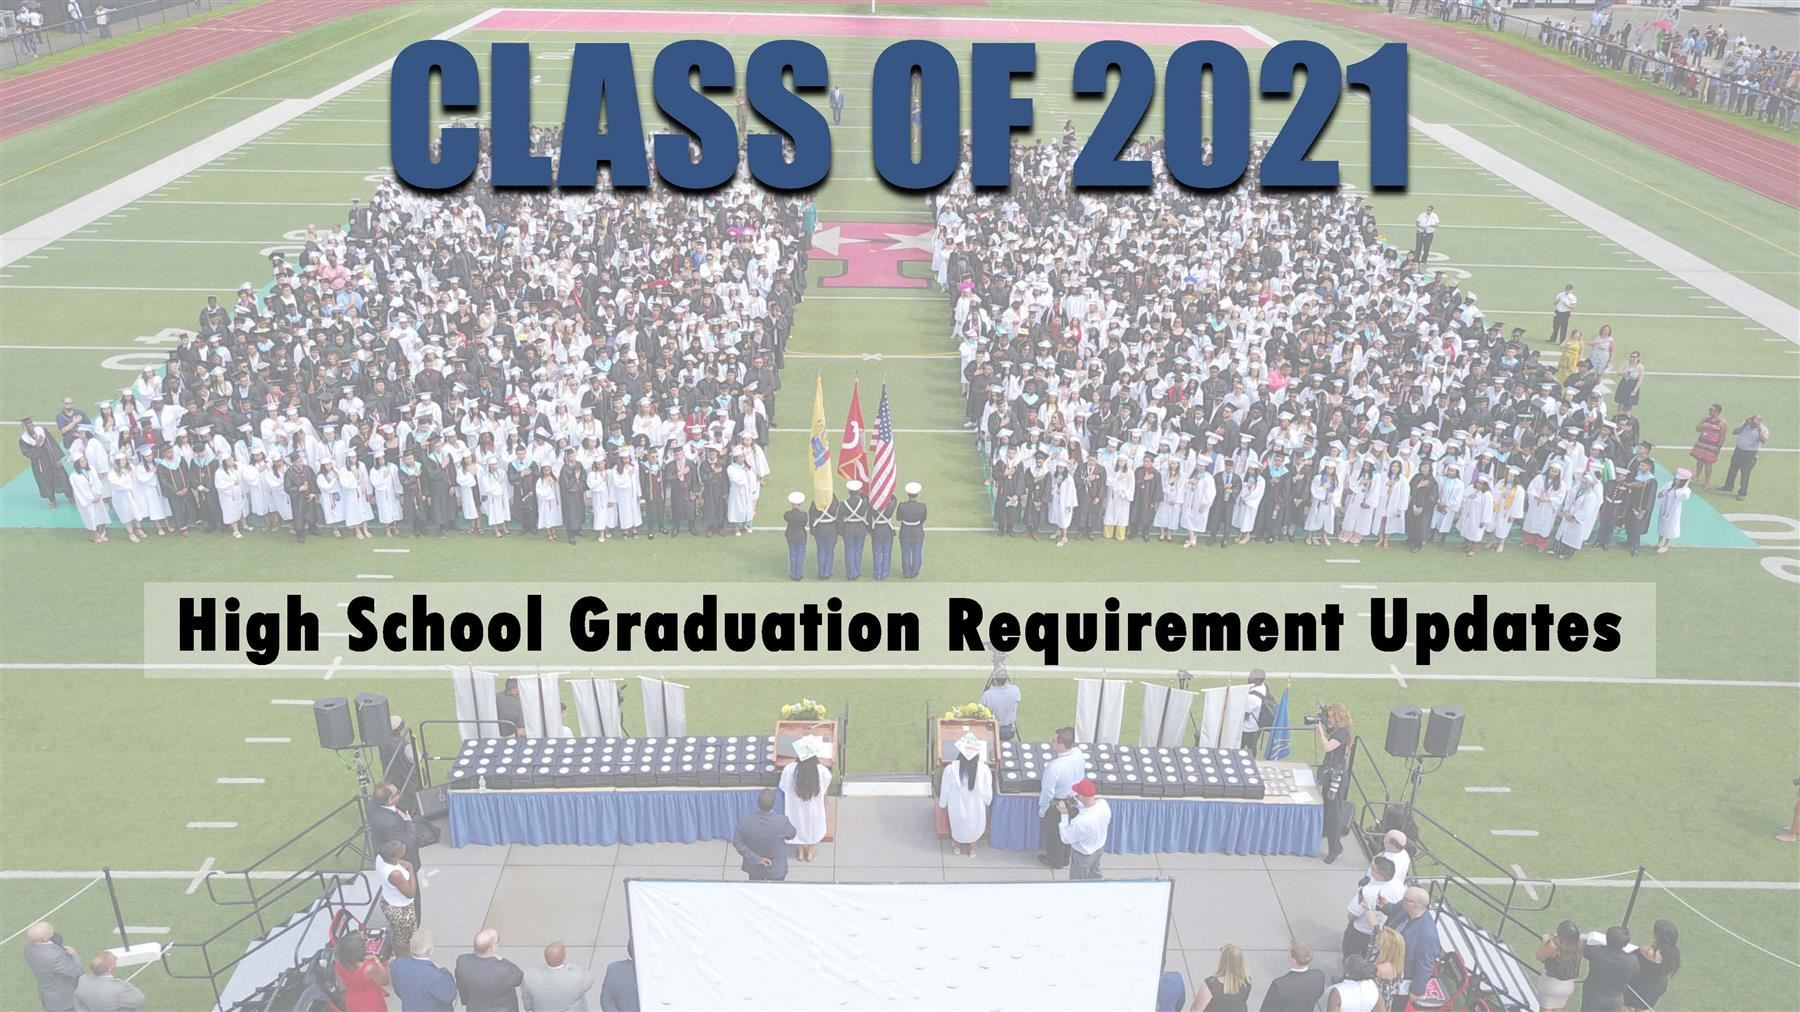 Letter to Class of 2021 Parents and Guardians- Graduation Requirements Update for Class of 2021